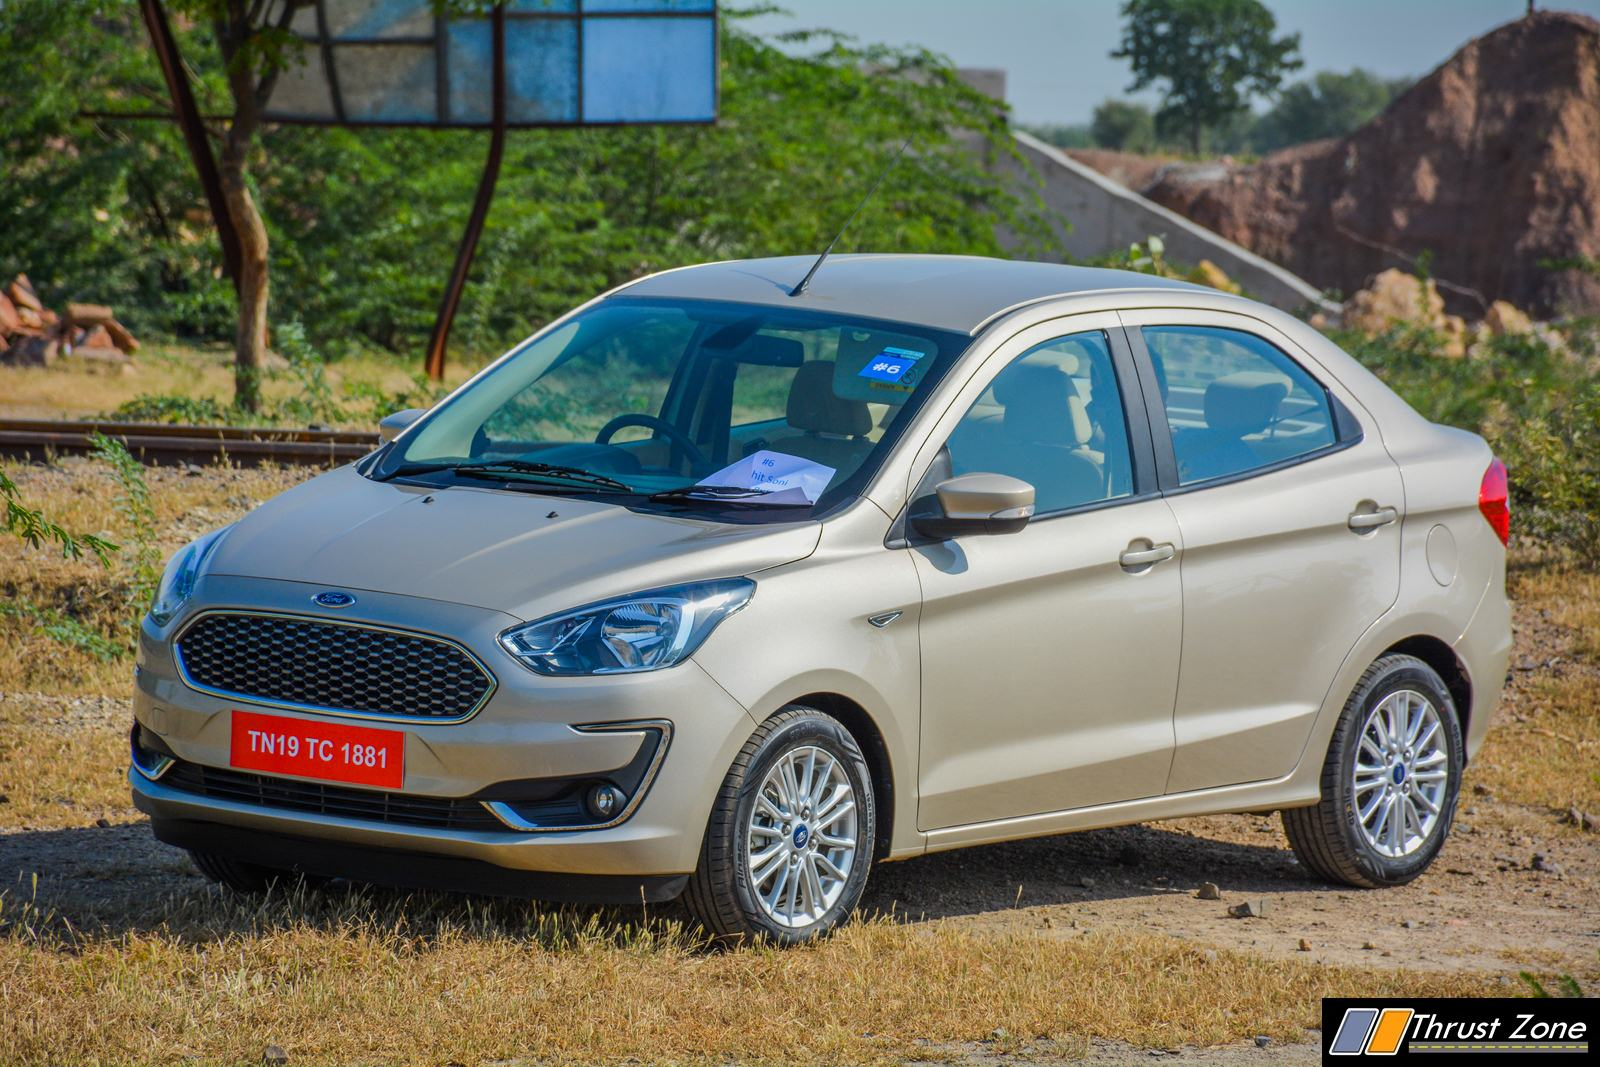 https://www.thrustzone.com/wp-content/uploads/2018/10/2018-Ford-Aspire-facelift-review-28.jpg